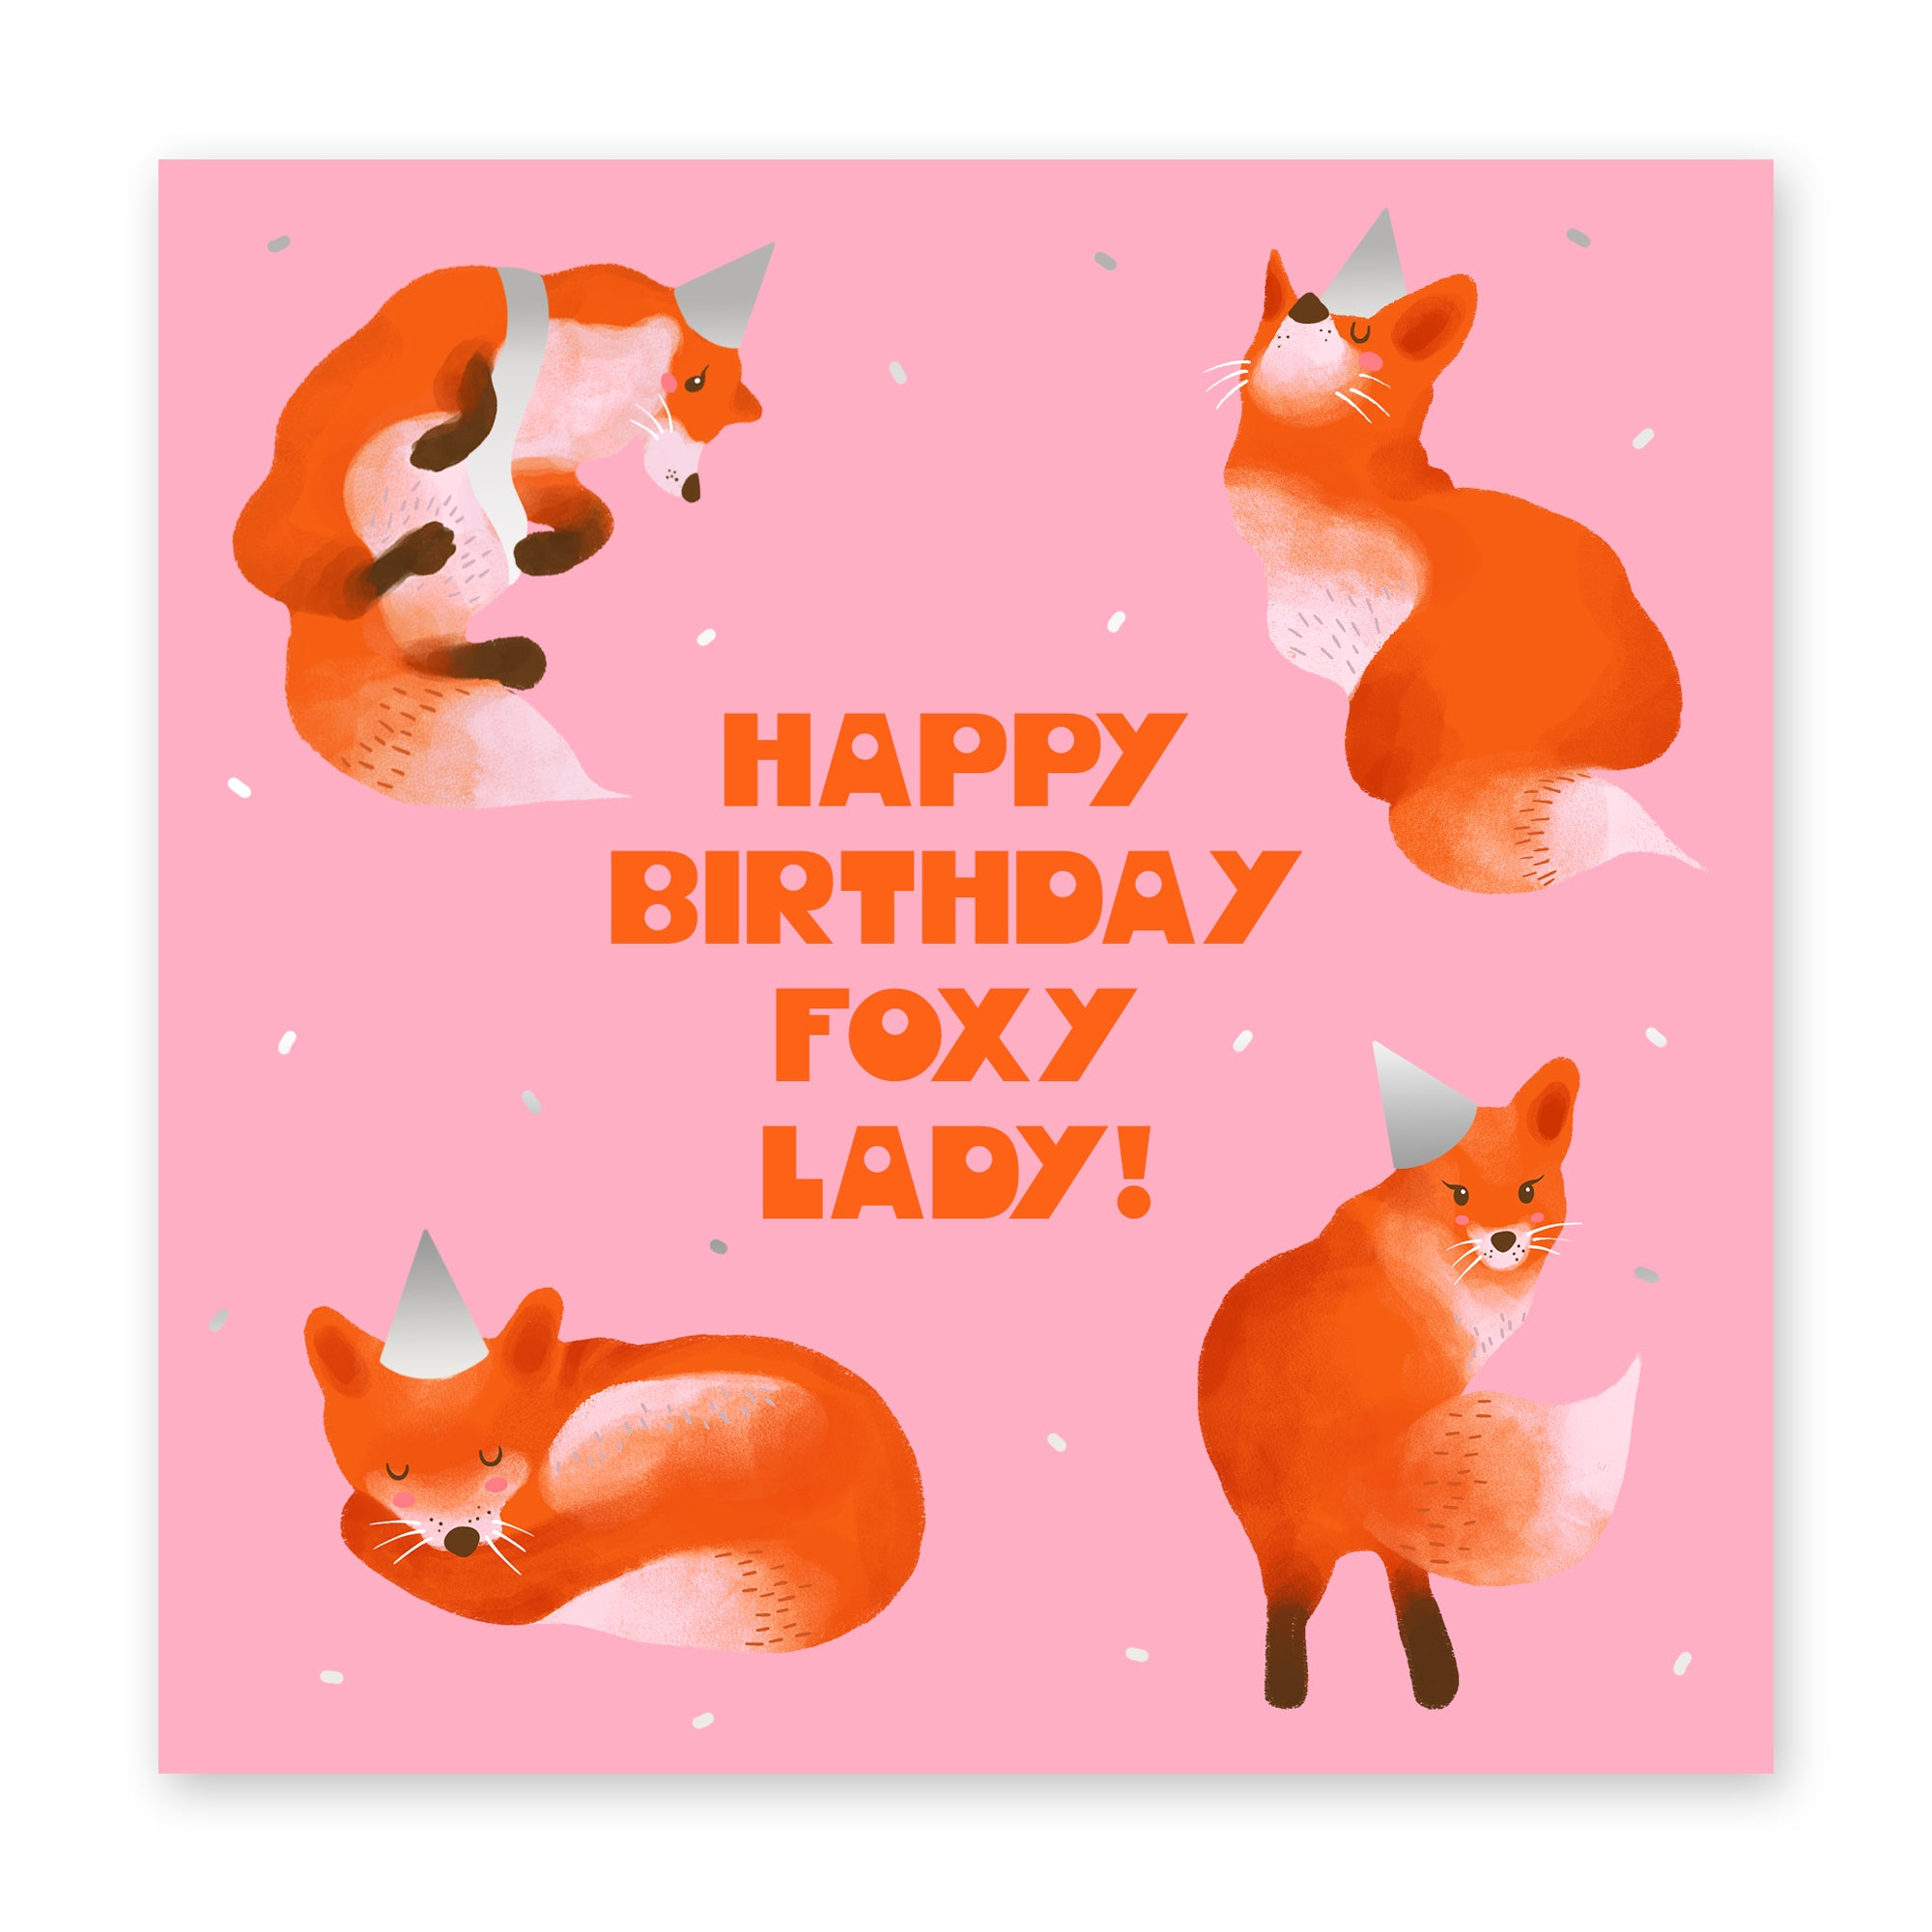 Happy Birthday Foxy Lady Birthday Card